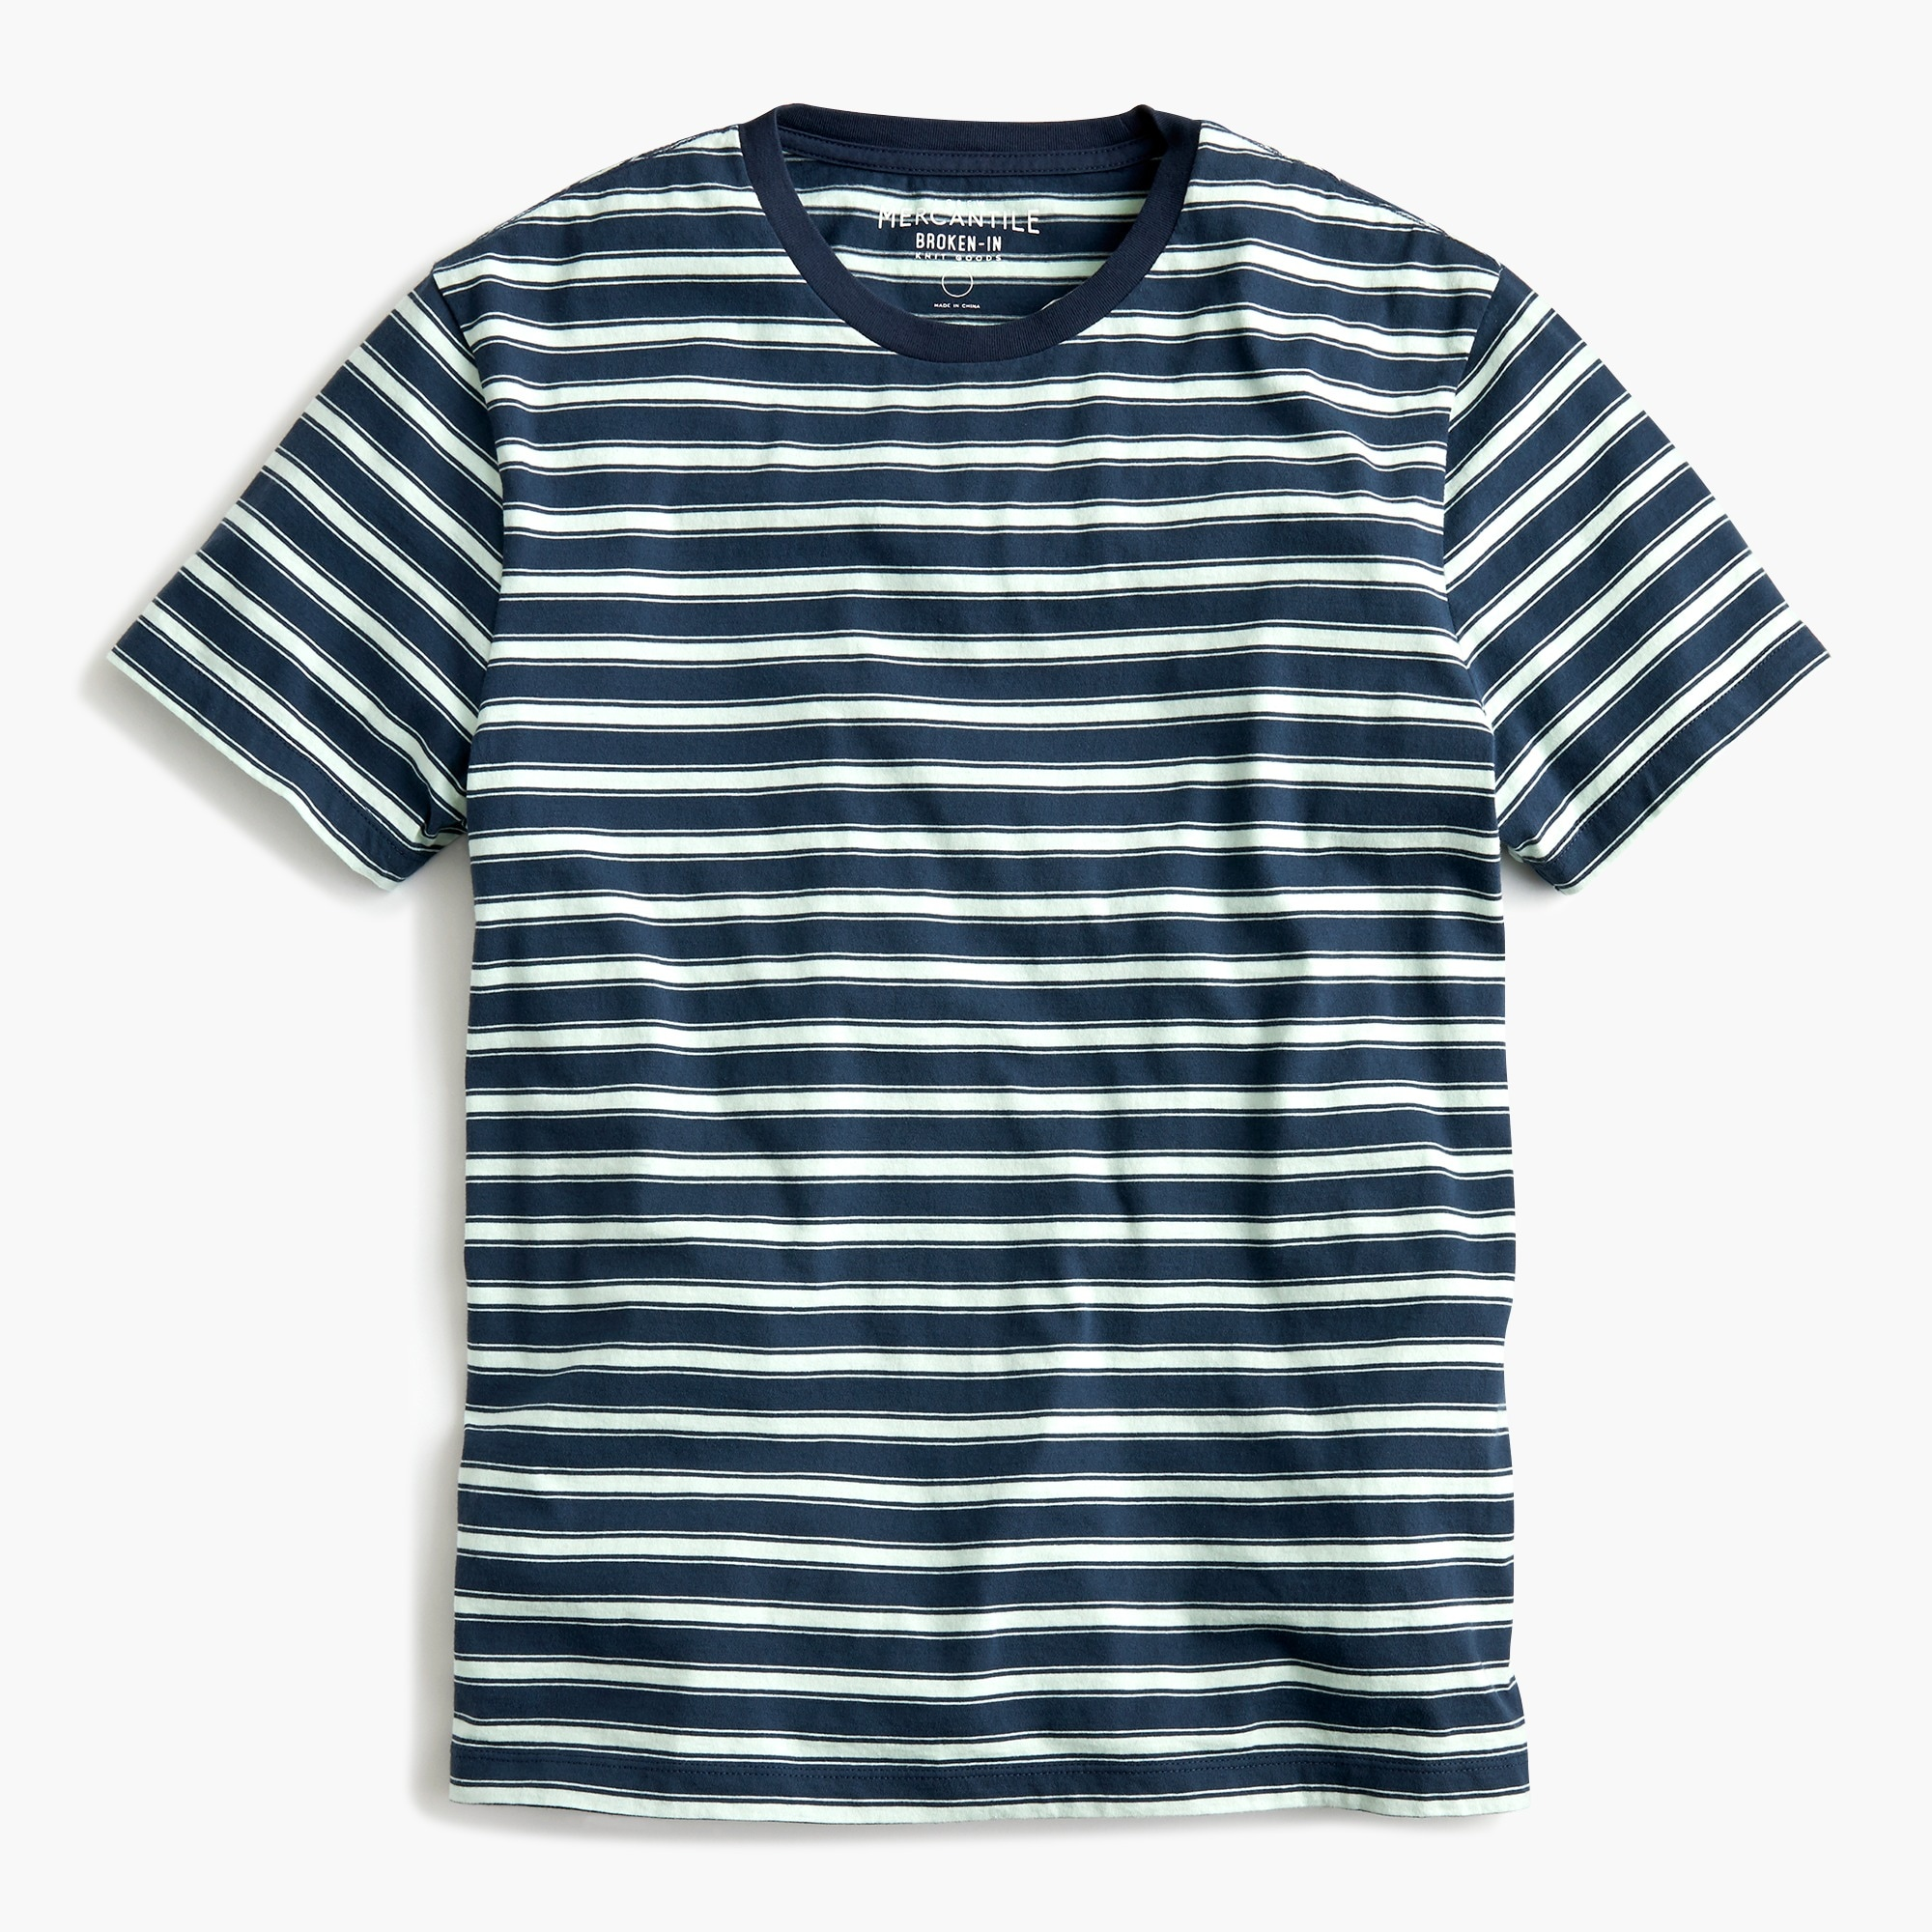 Tall J.Crew Mercantile Broken-in T-shirt in navy stripe